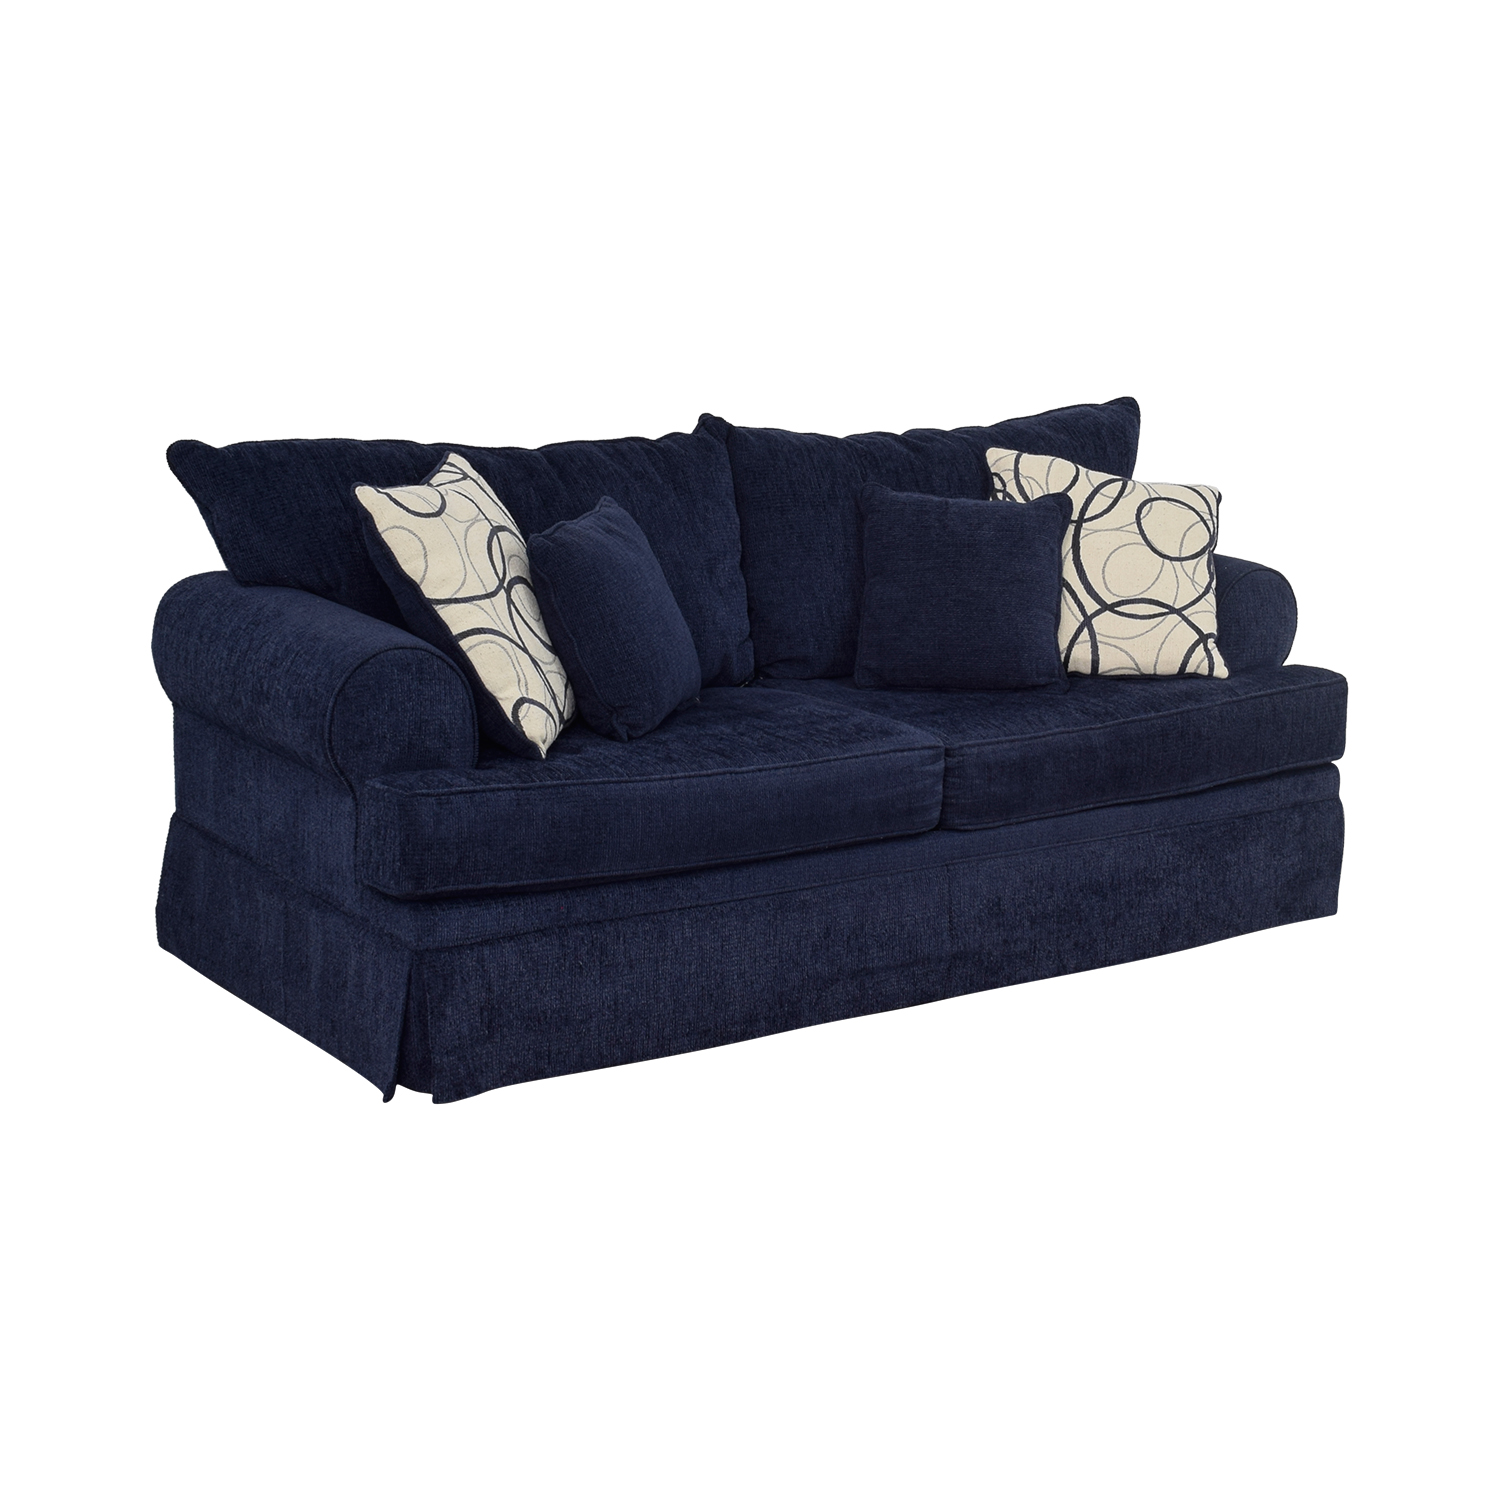 found regard with stylish to the furniture wonderful sofa most pertaining bob sofas bobs property your for